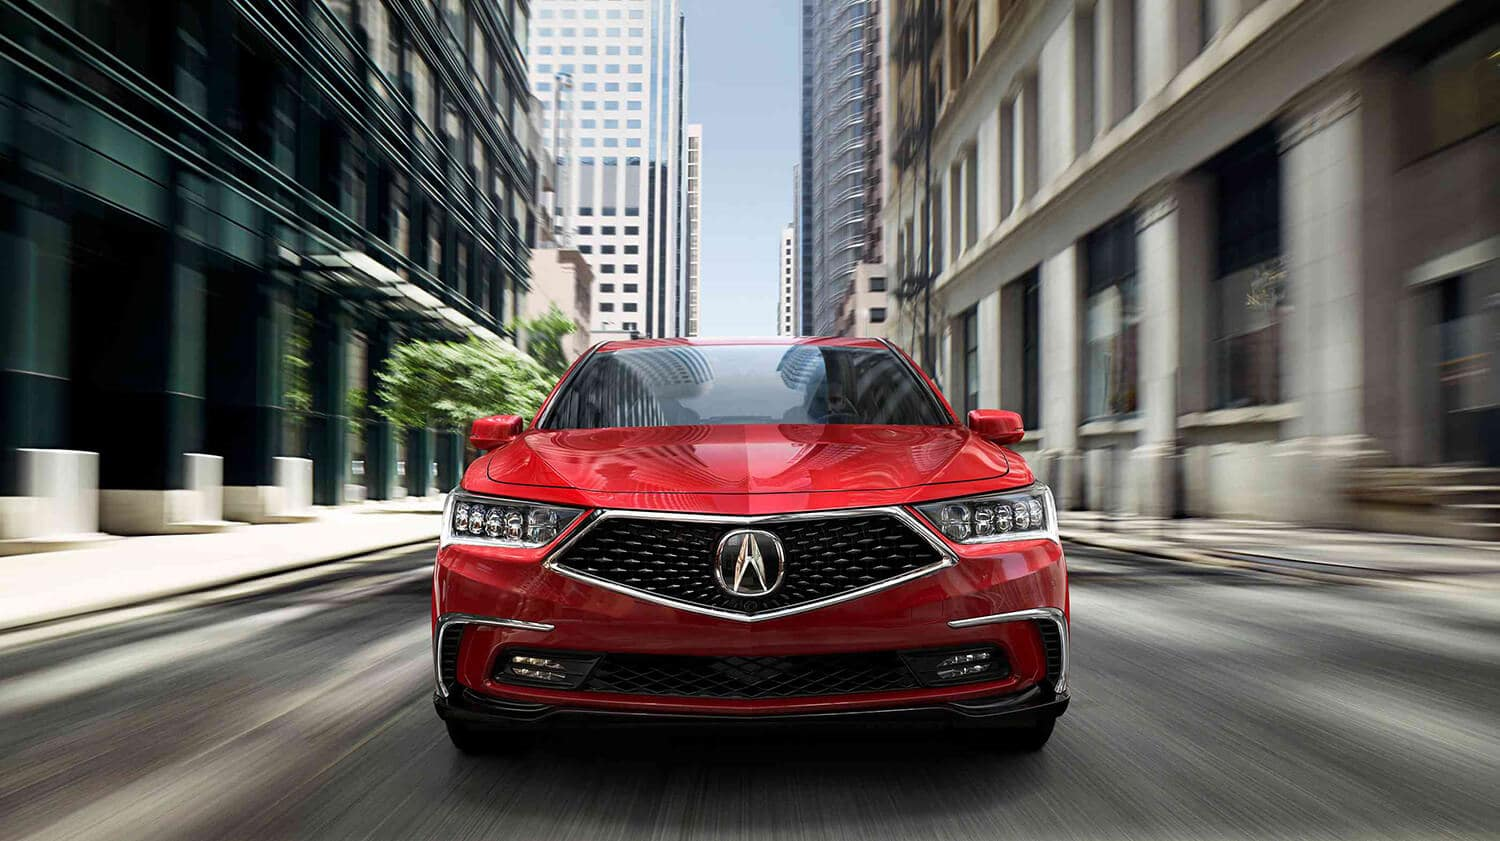 2020 Acura RLX Exterior Front Angle Diamond Pentagon Grille